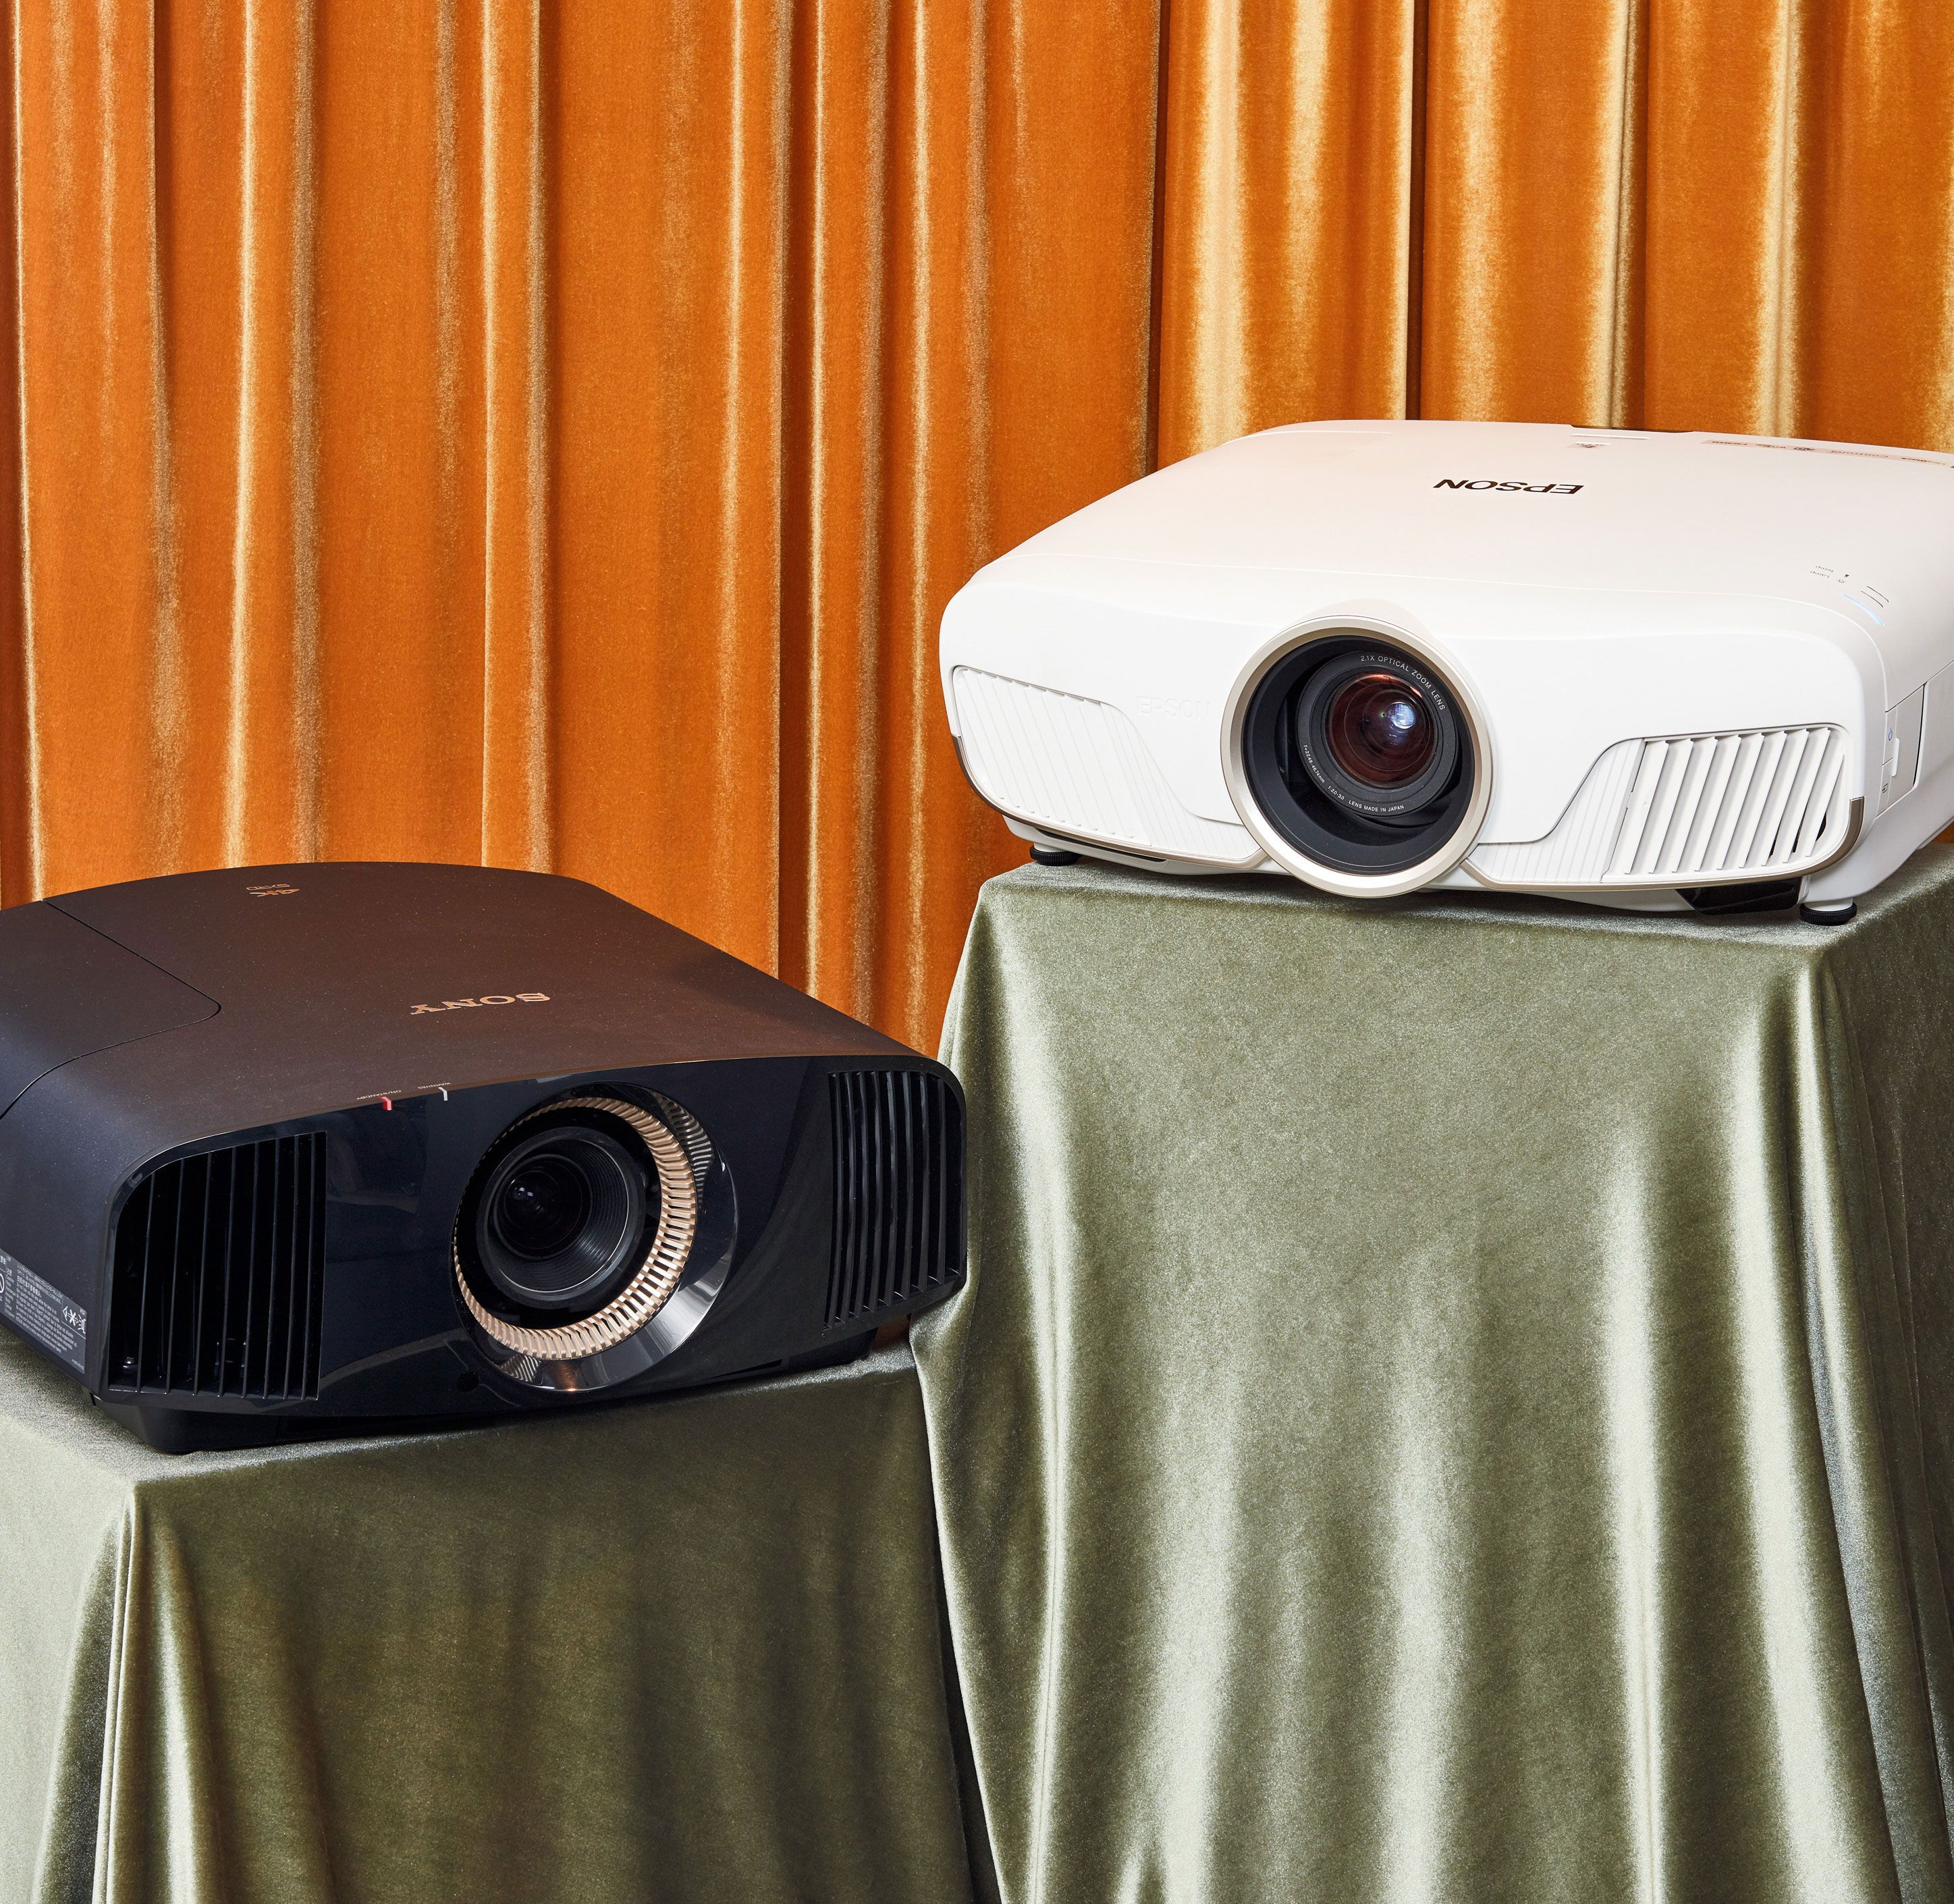 medium resolution of home theater wiring articles 2 killer projectors for your home theater hometheater wiringarticles